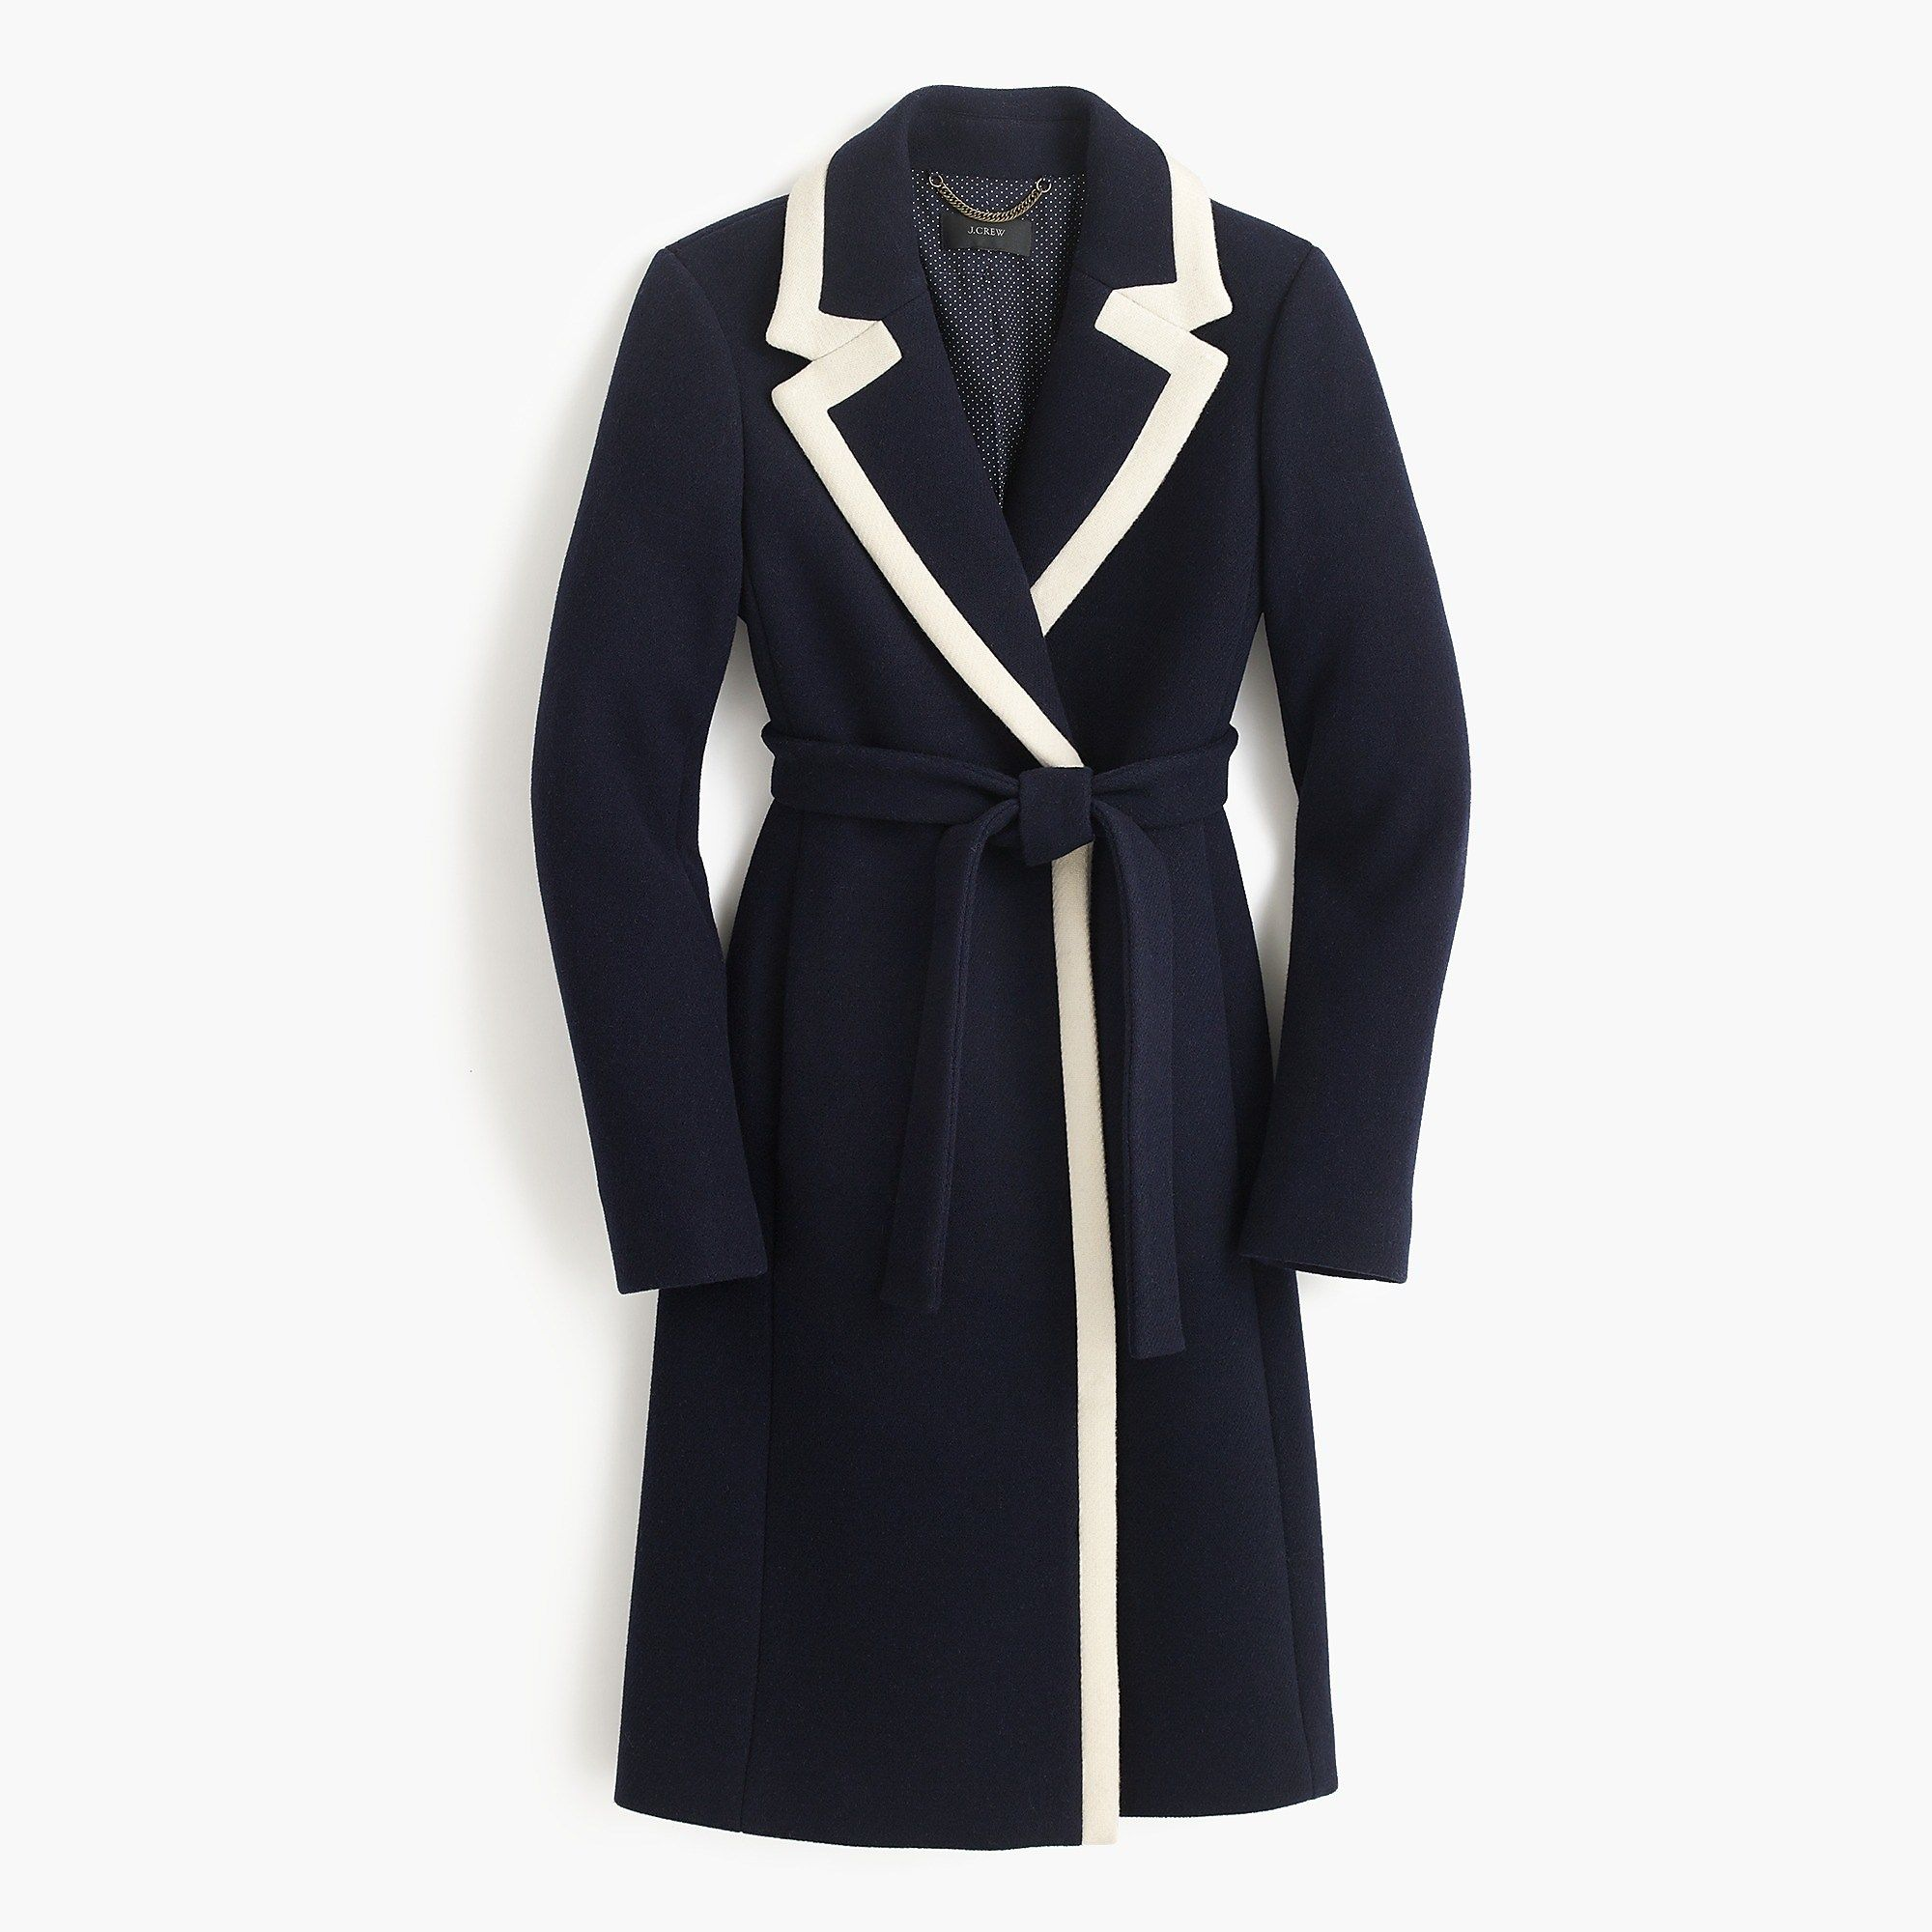 Meghans Sold-Out J.Crew Coat Just Got Restocked Meghans Sold-Out J.Crew Coat Just Got Restocked new images